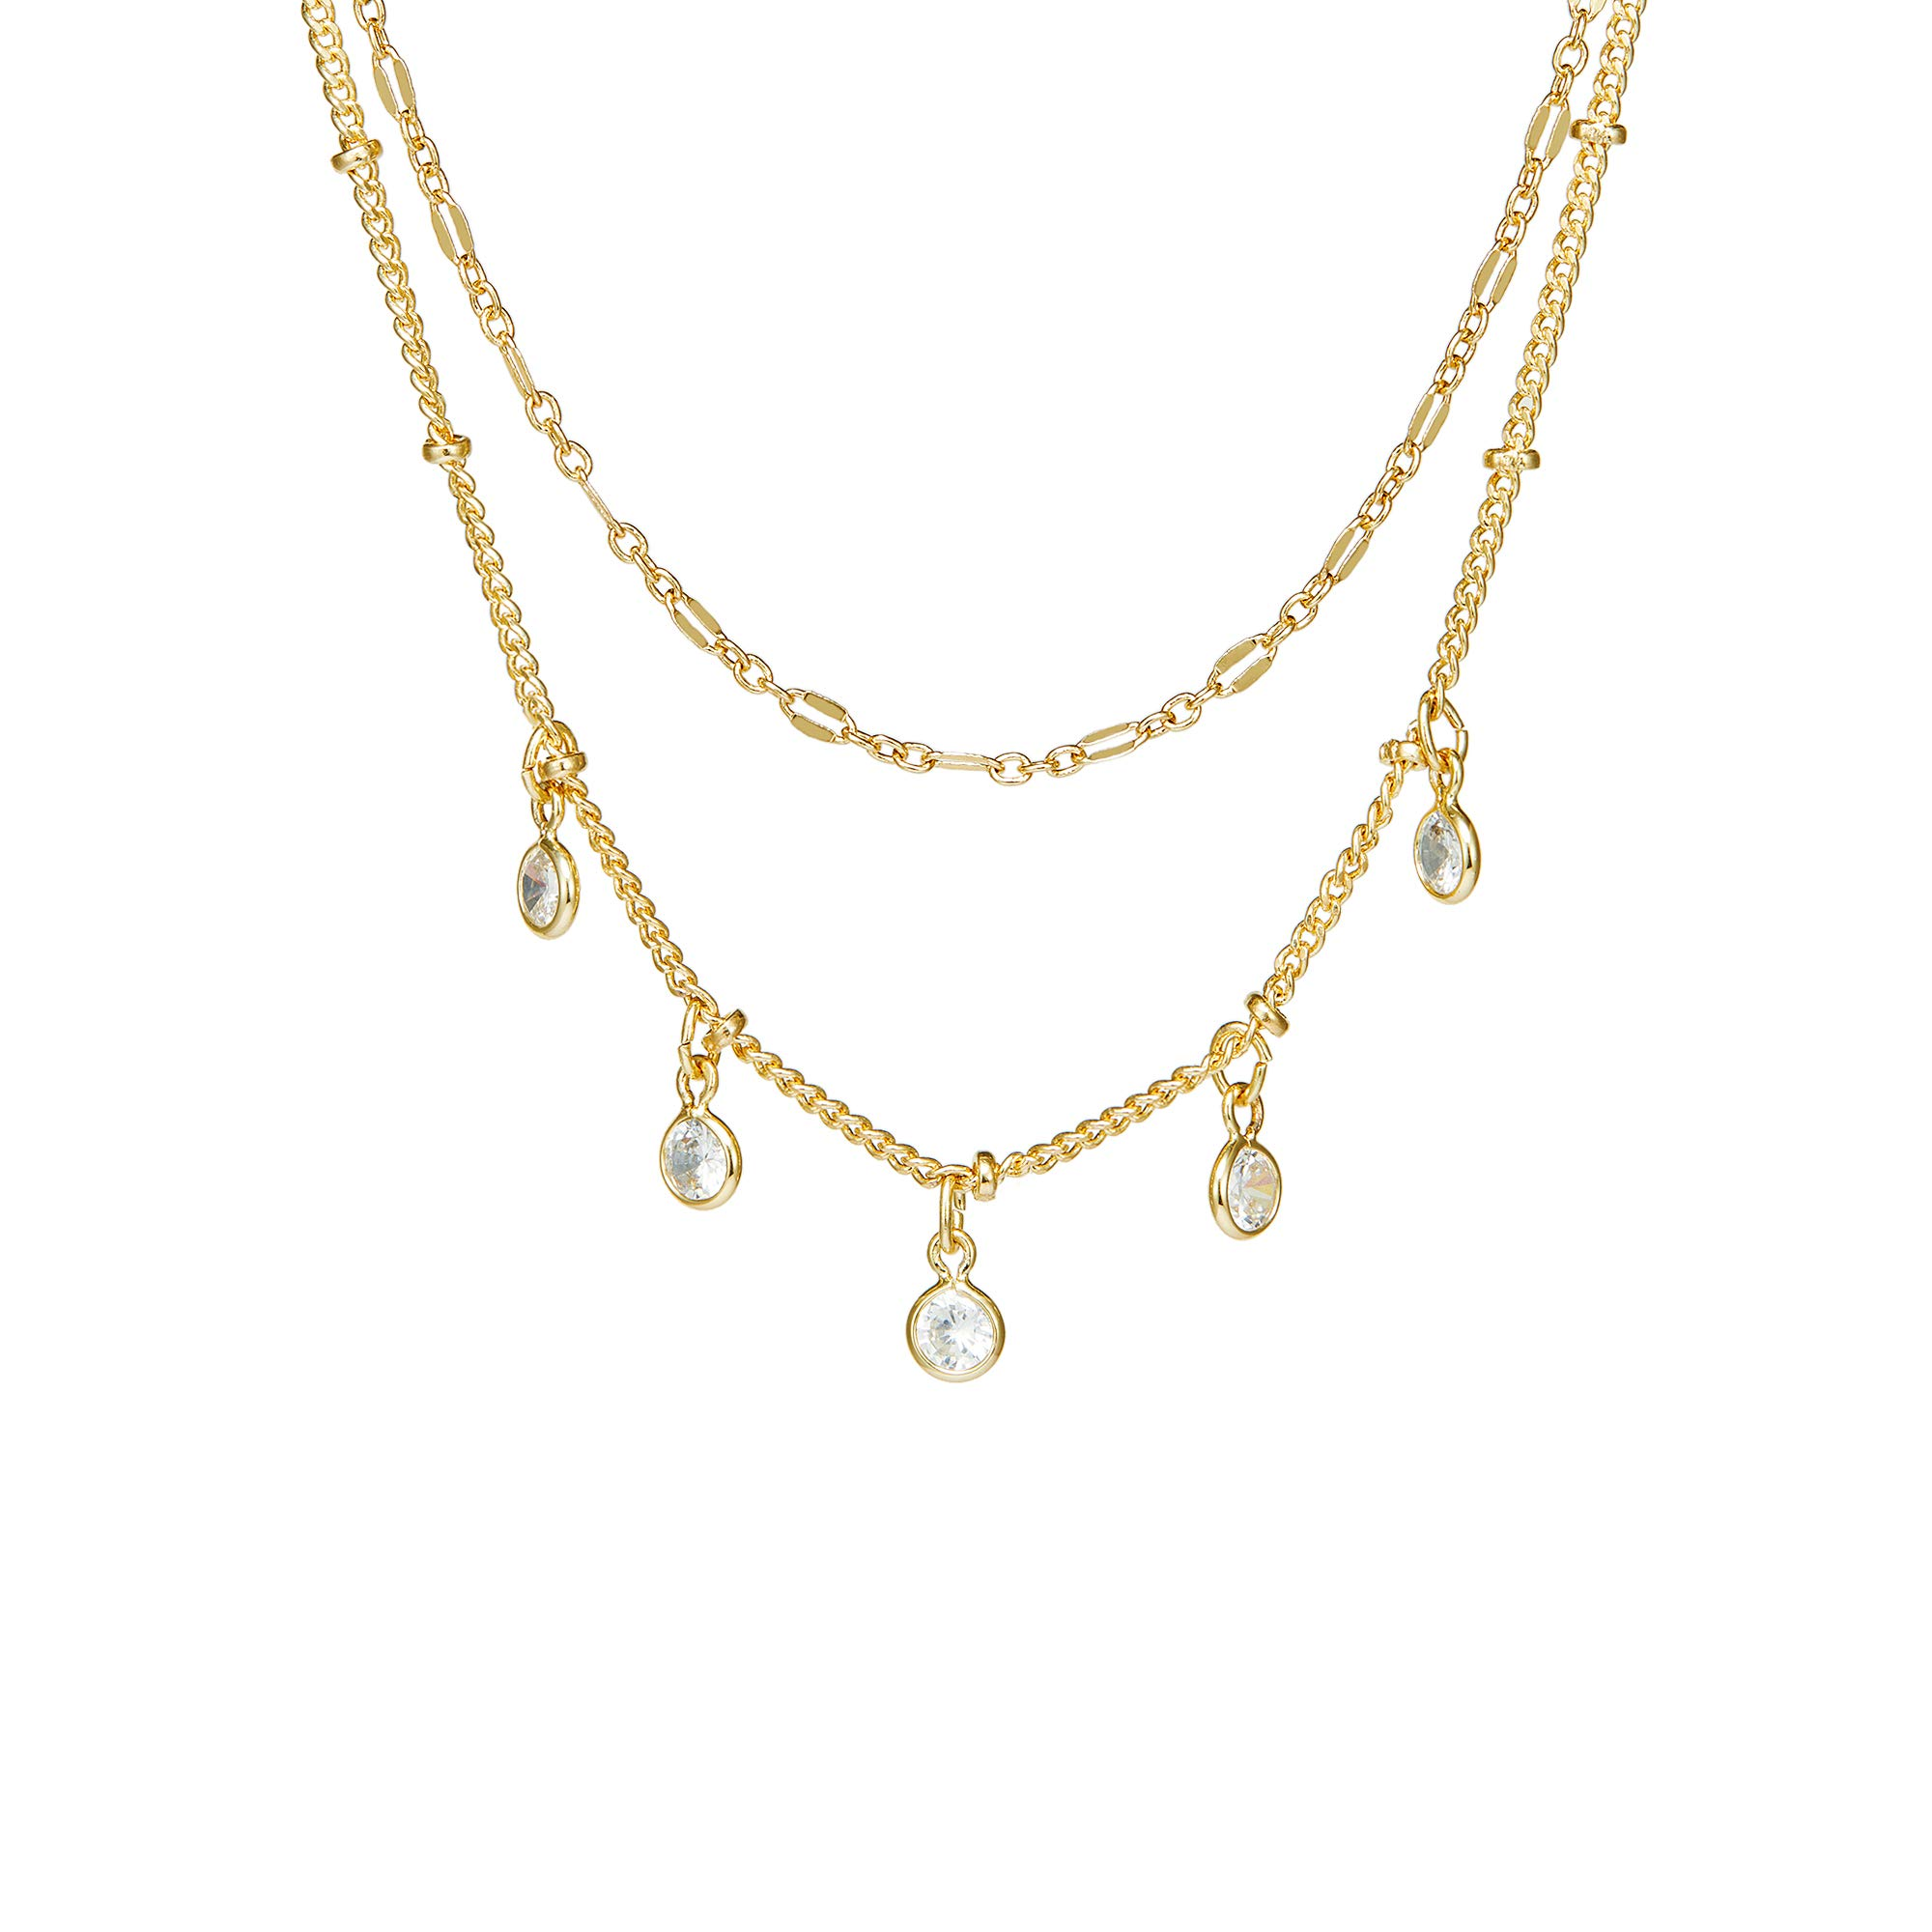 Fettero Gold Choker Dainty Necklace 14K Gold Fill Beads Chain Double Layered Collar Five Charm Round CZ Pendant